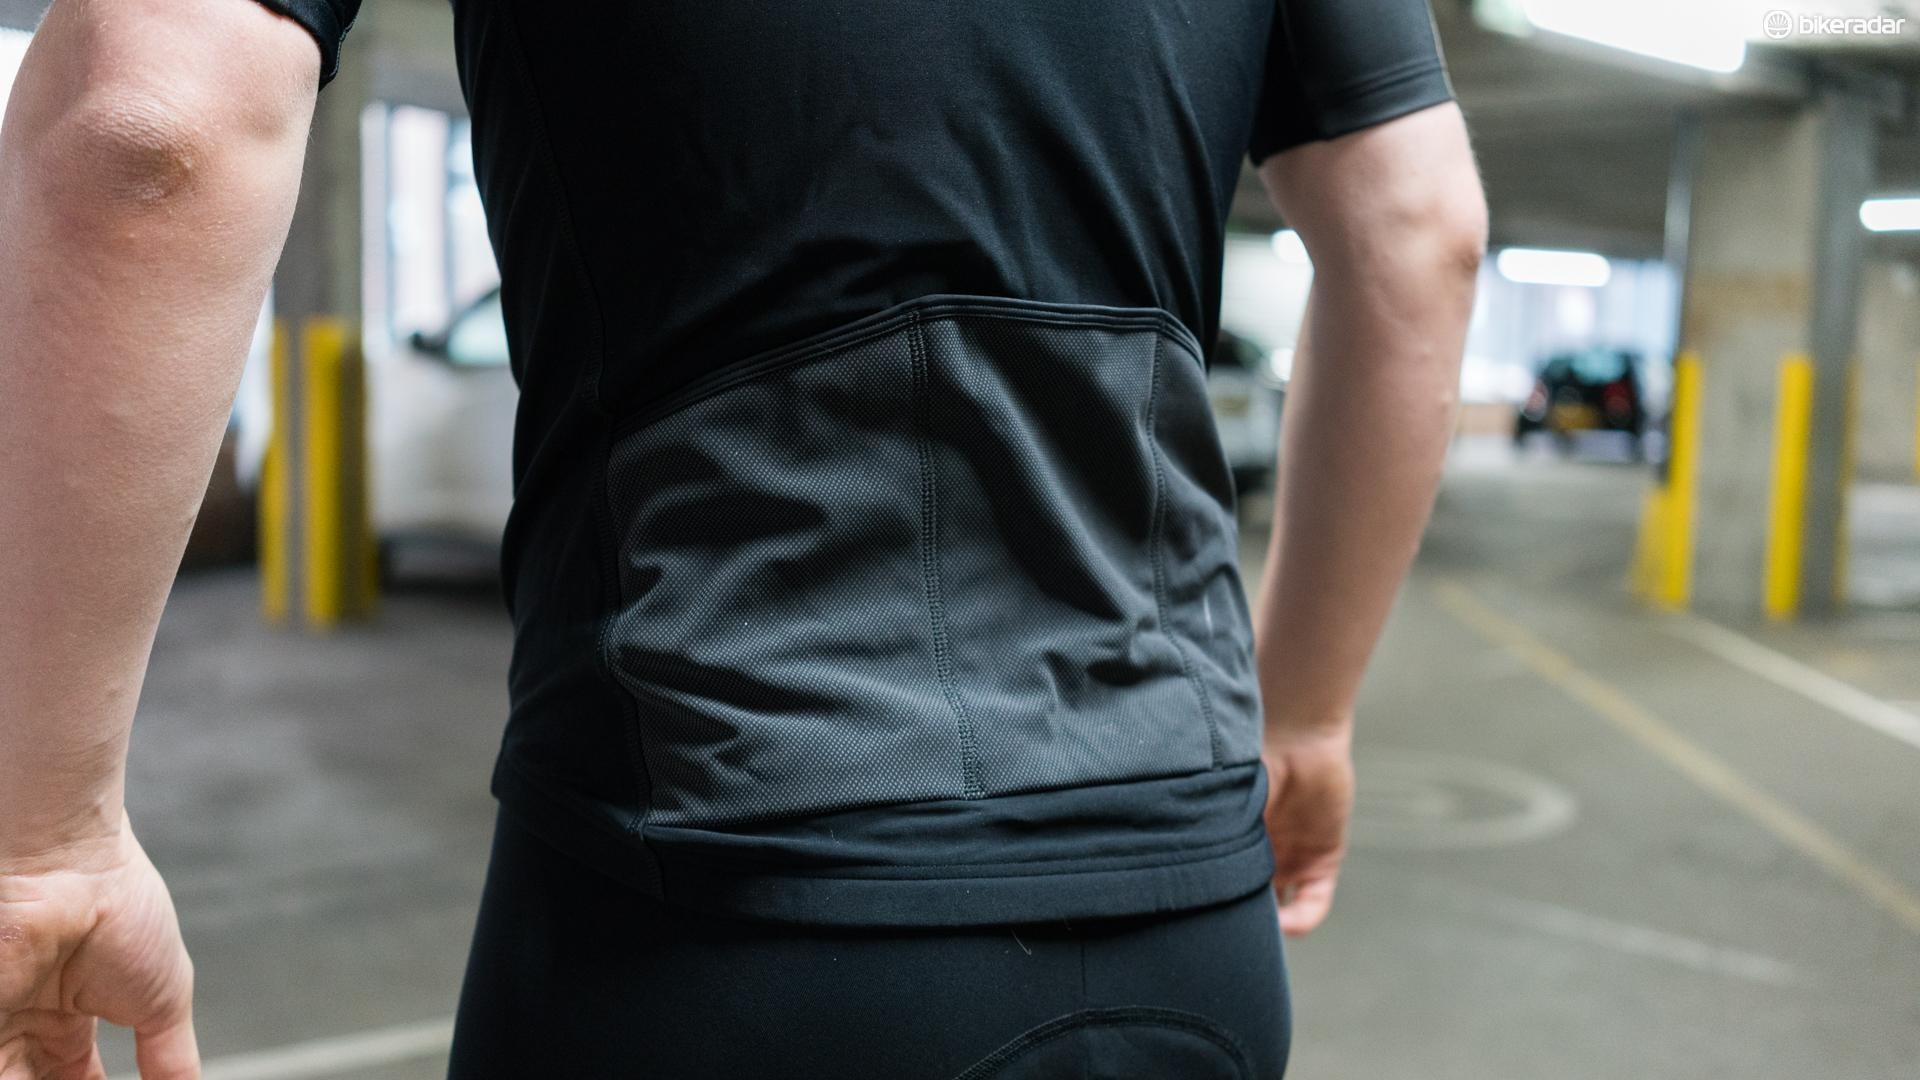 Bioracer's Black Pixel reflective material covers the rear cargo pockets for improved visibility in low light